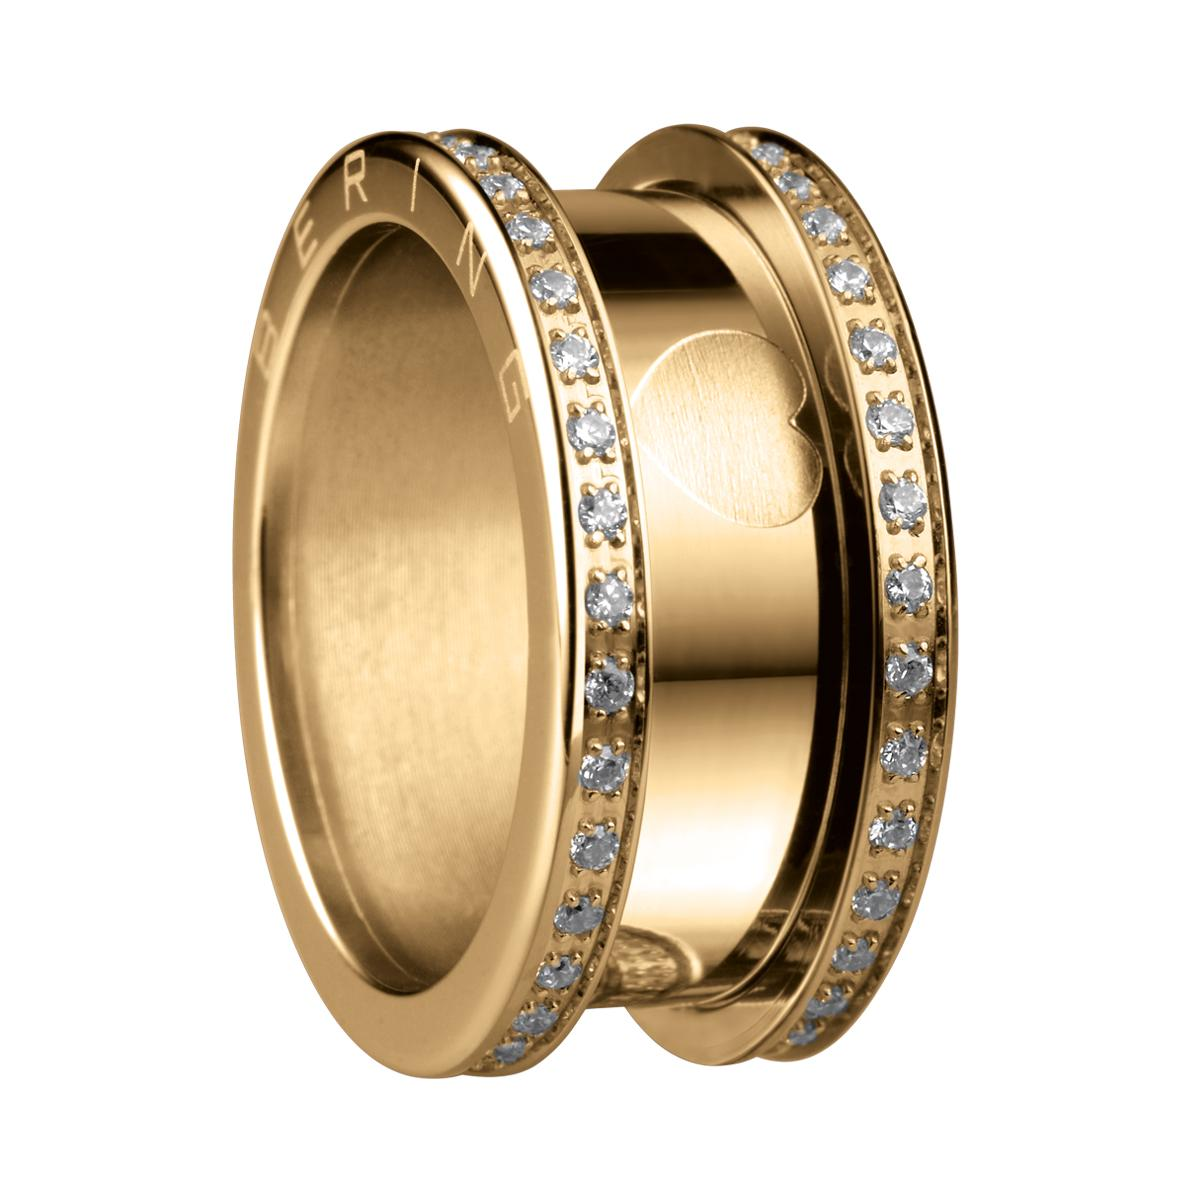 Bering Outer Ring 5232764 1